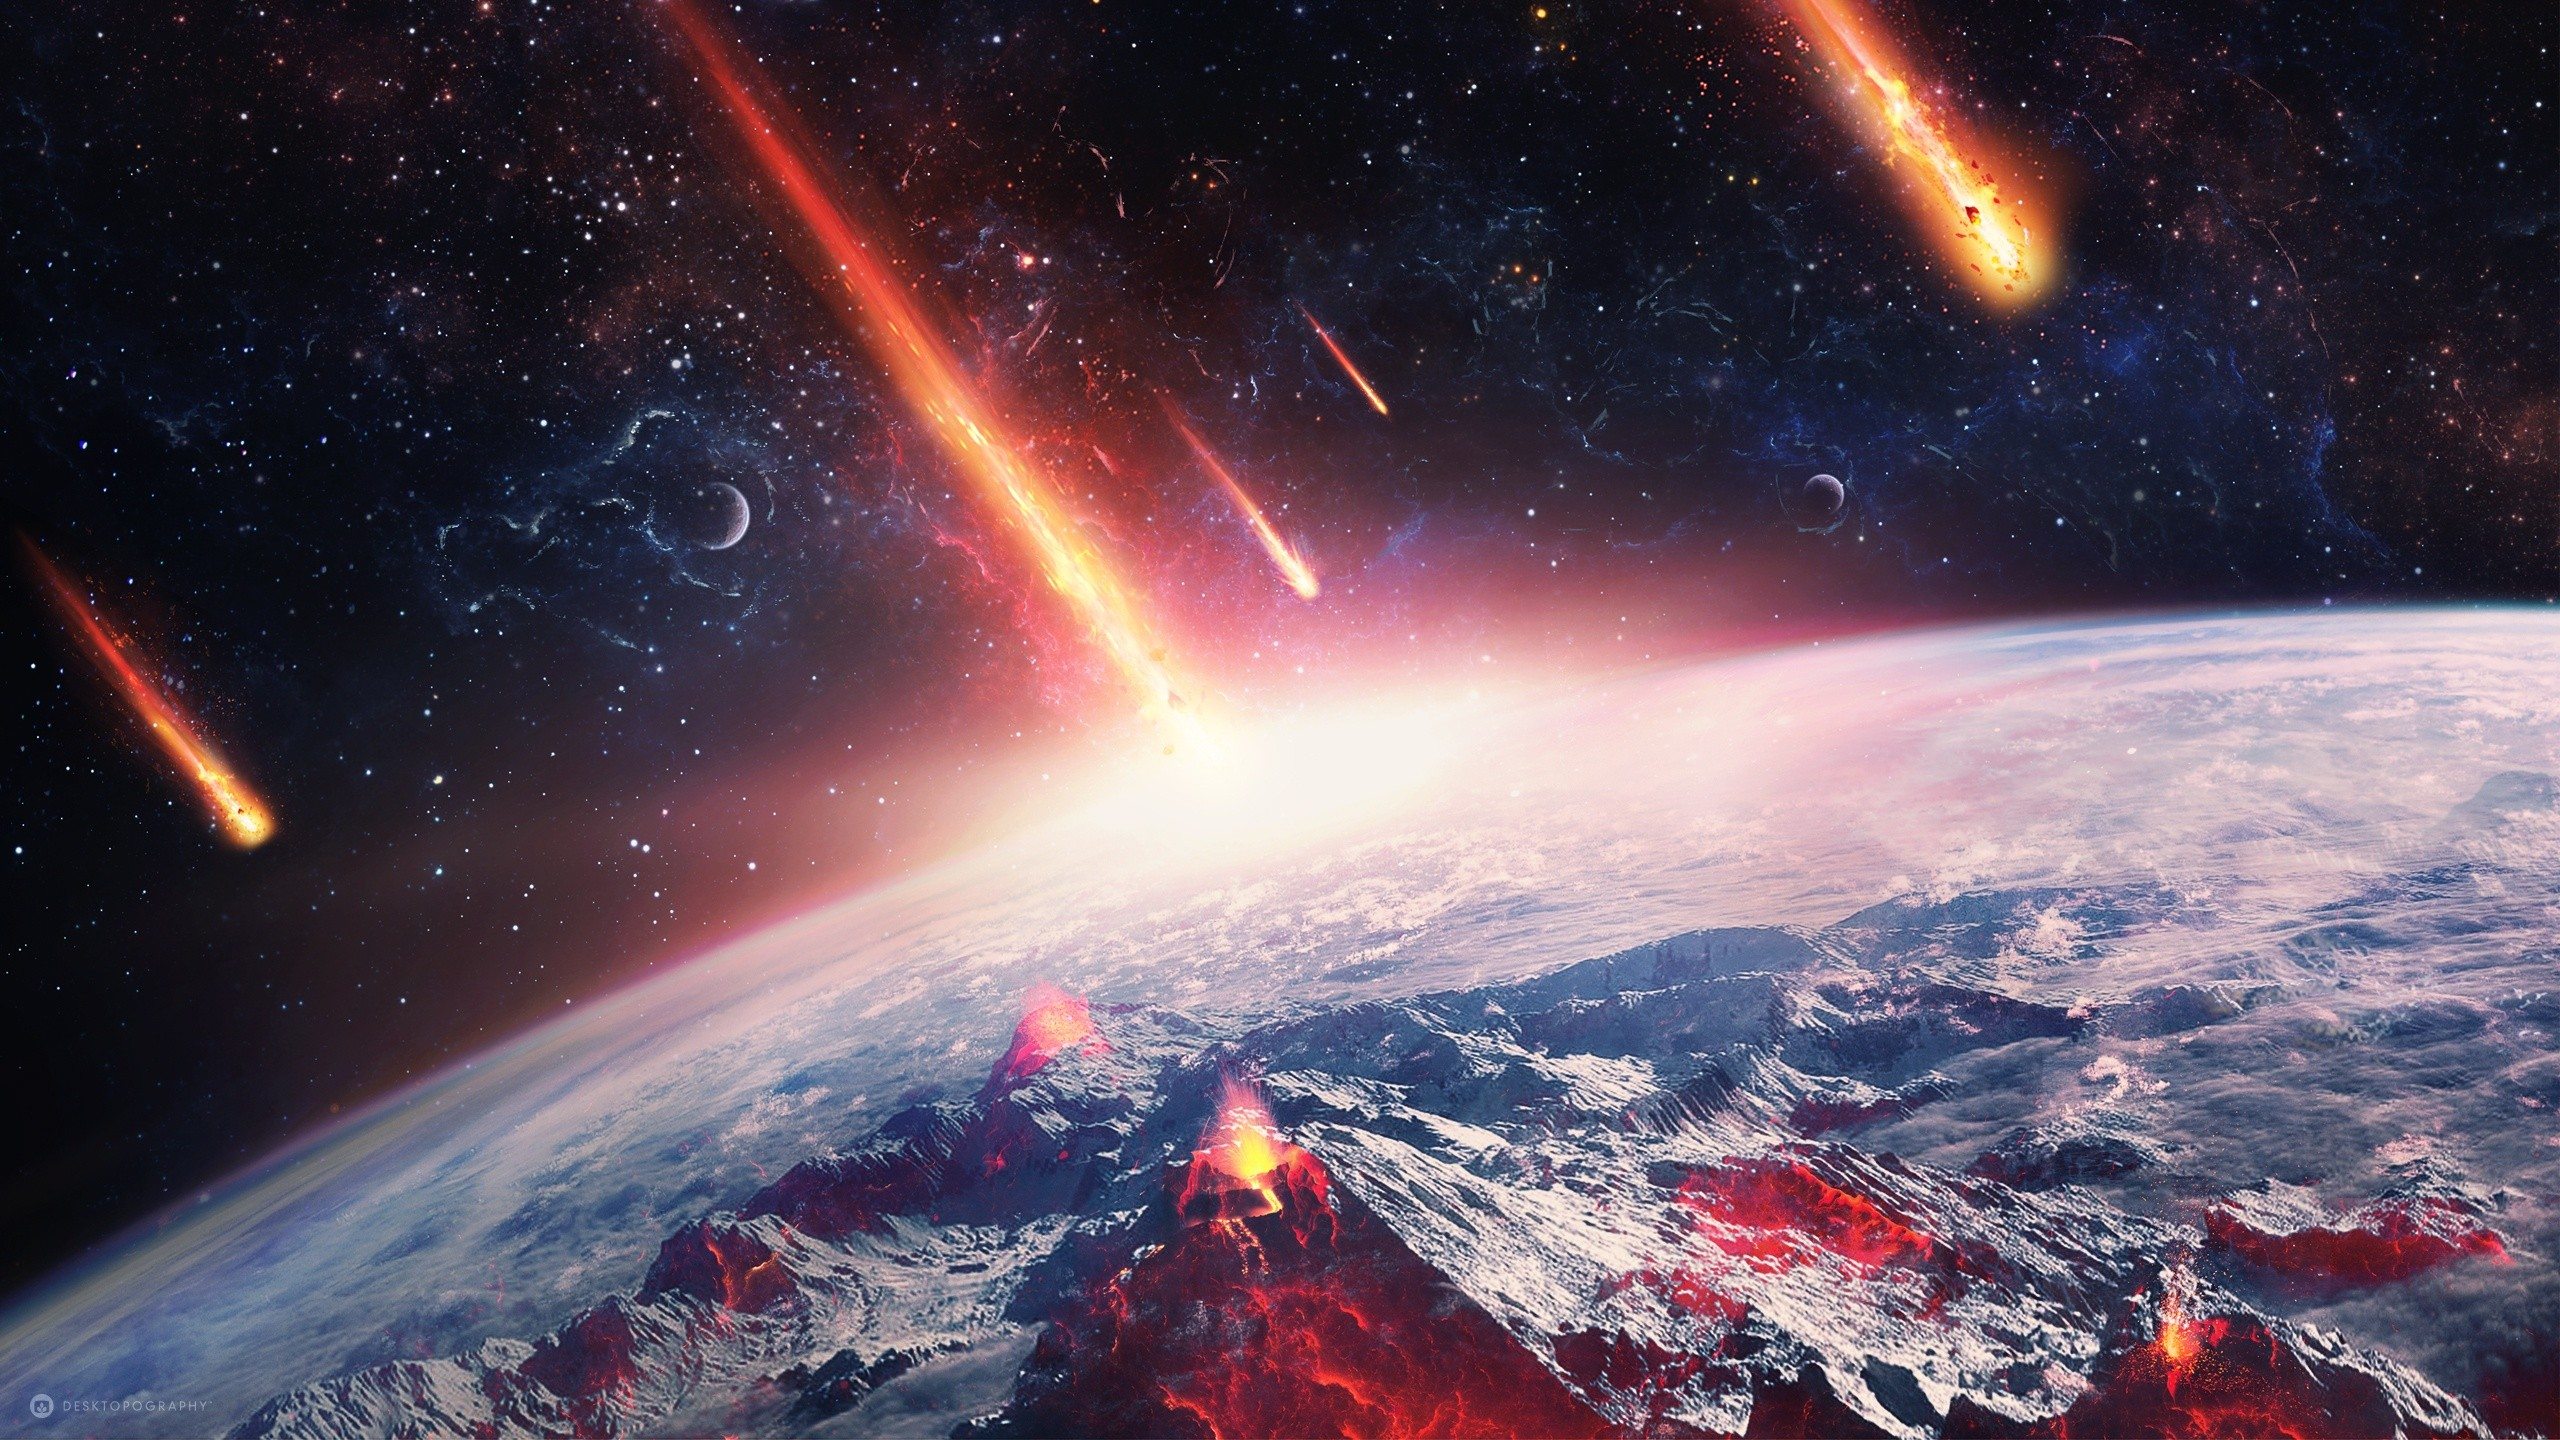 Hd Wallpapers Fire Cars Asteroid World Space Desktopography Fire Volcano